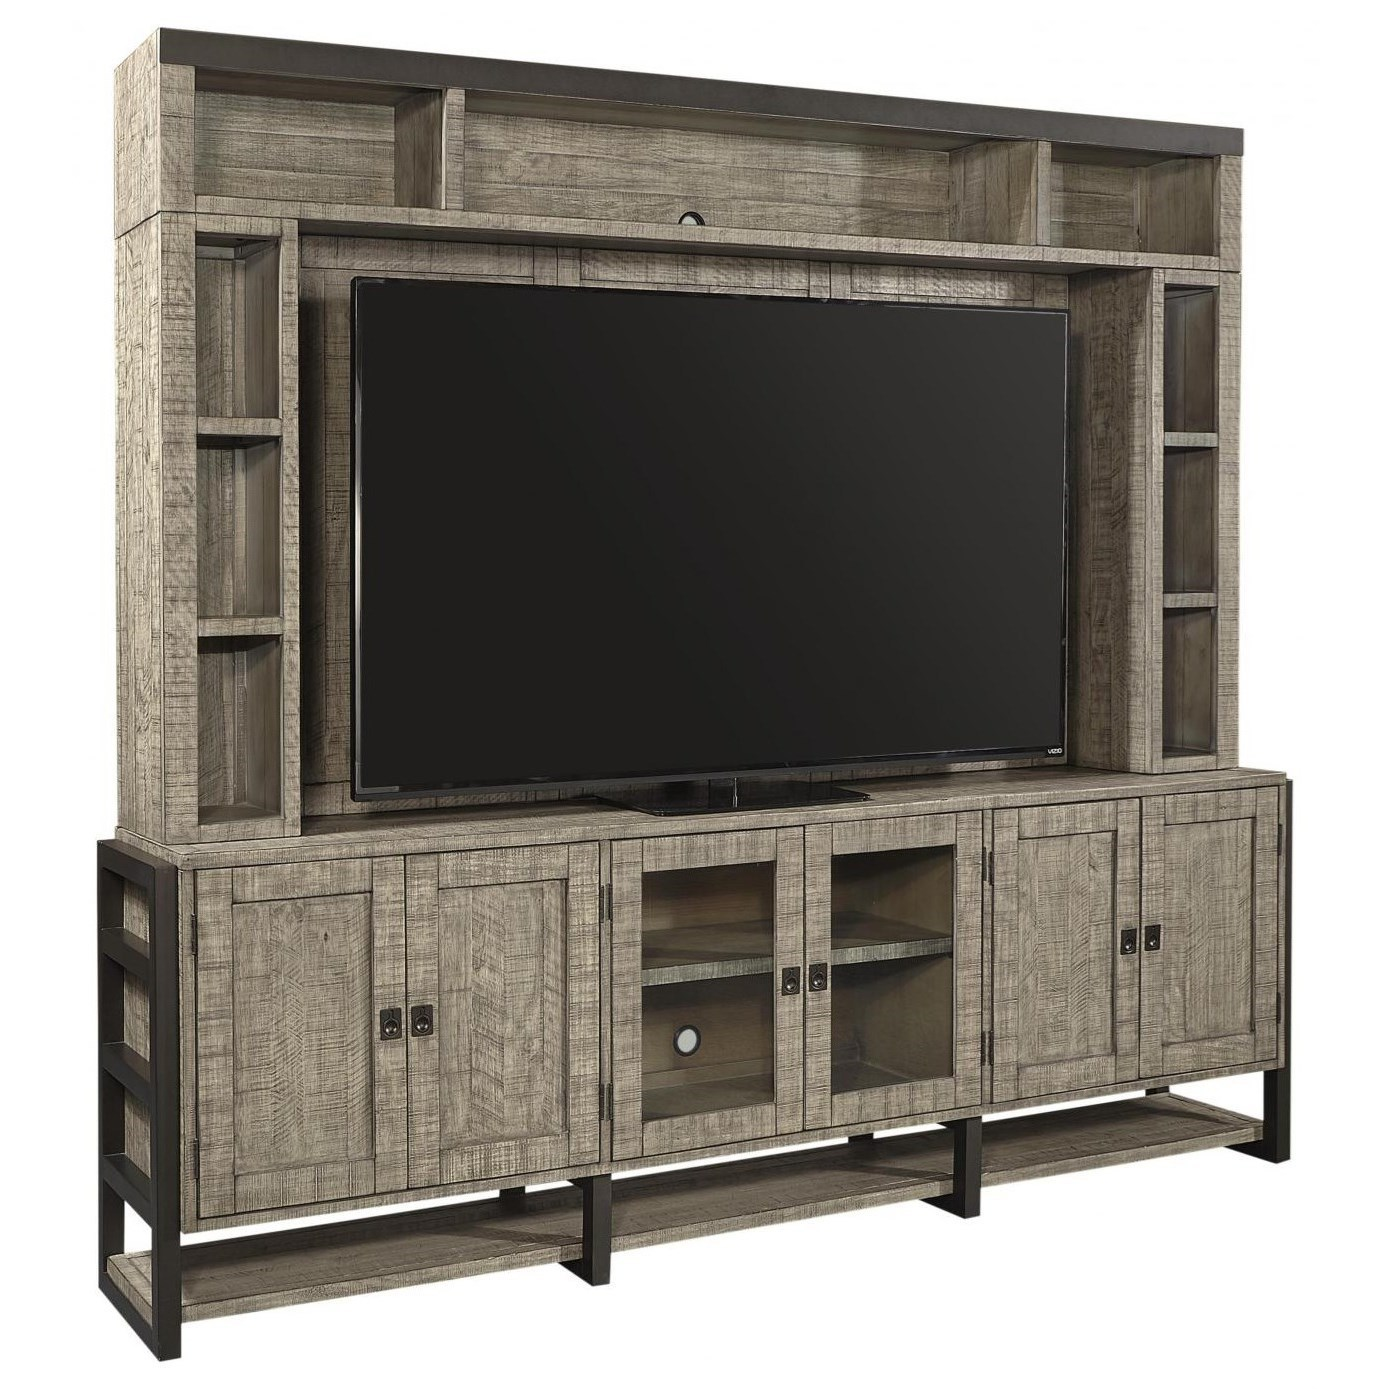 Rustic TV Stand with Hutch and Storage